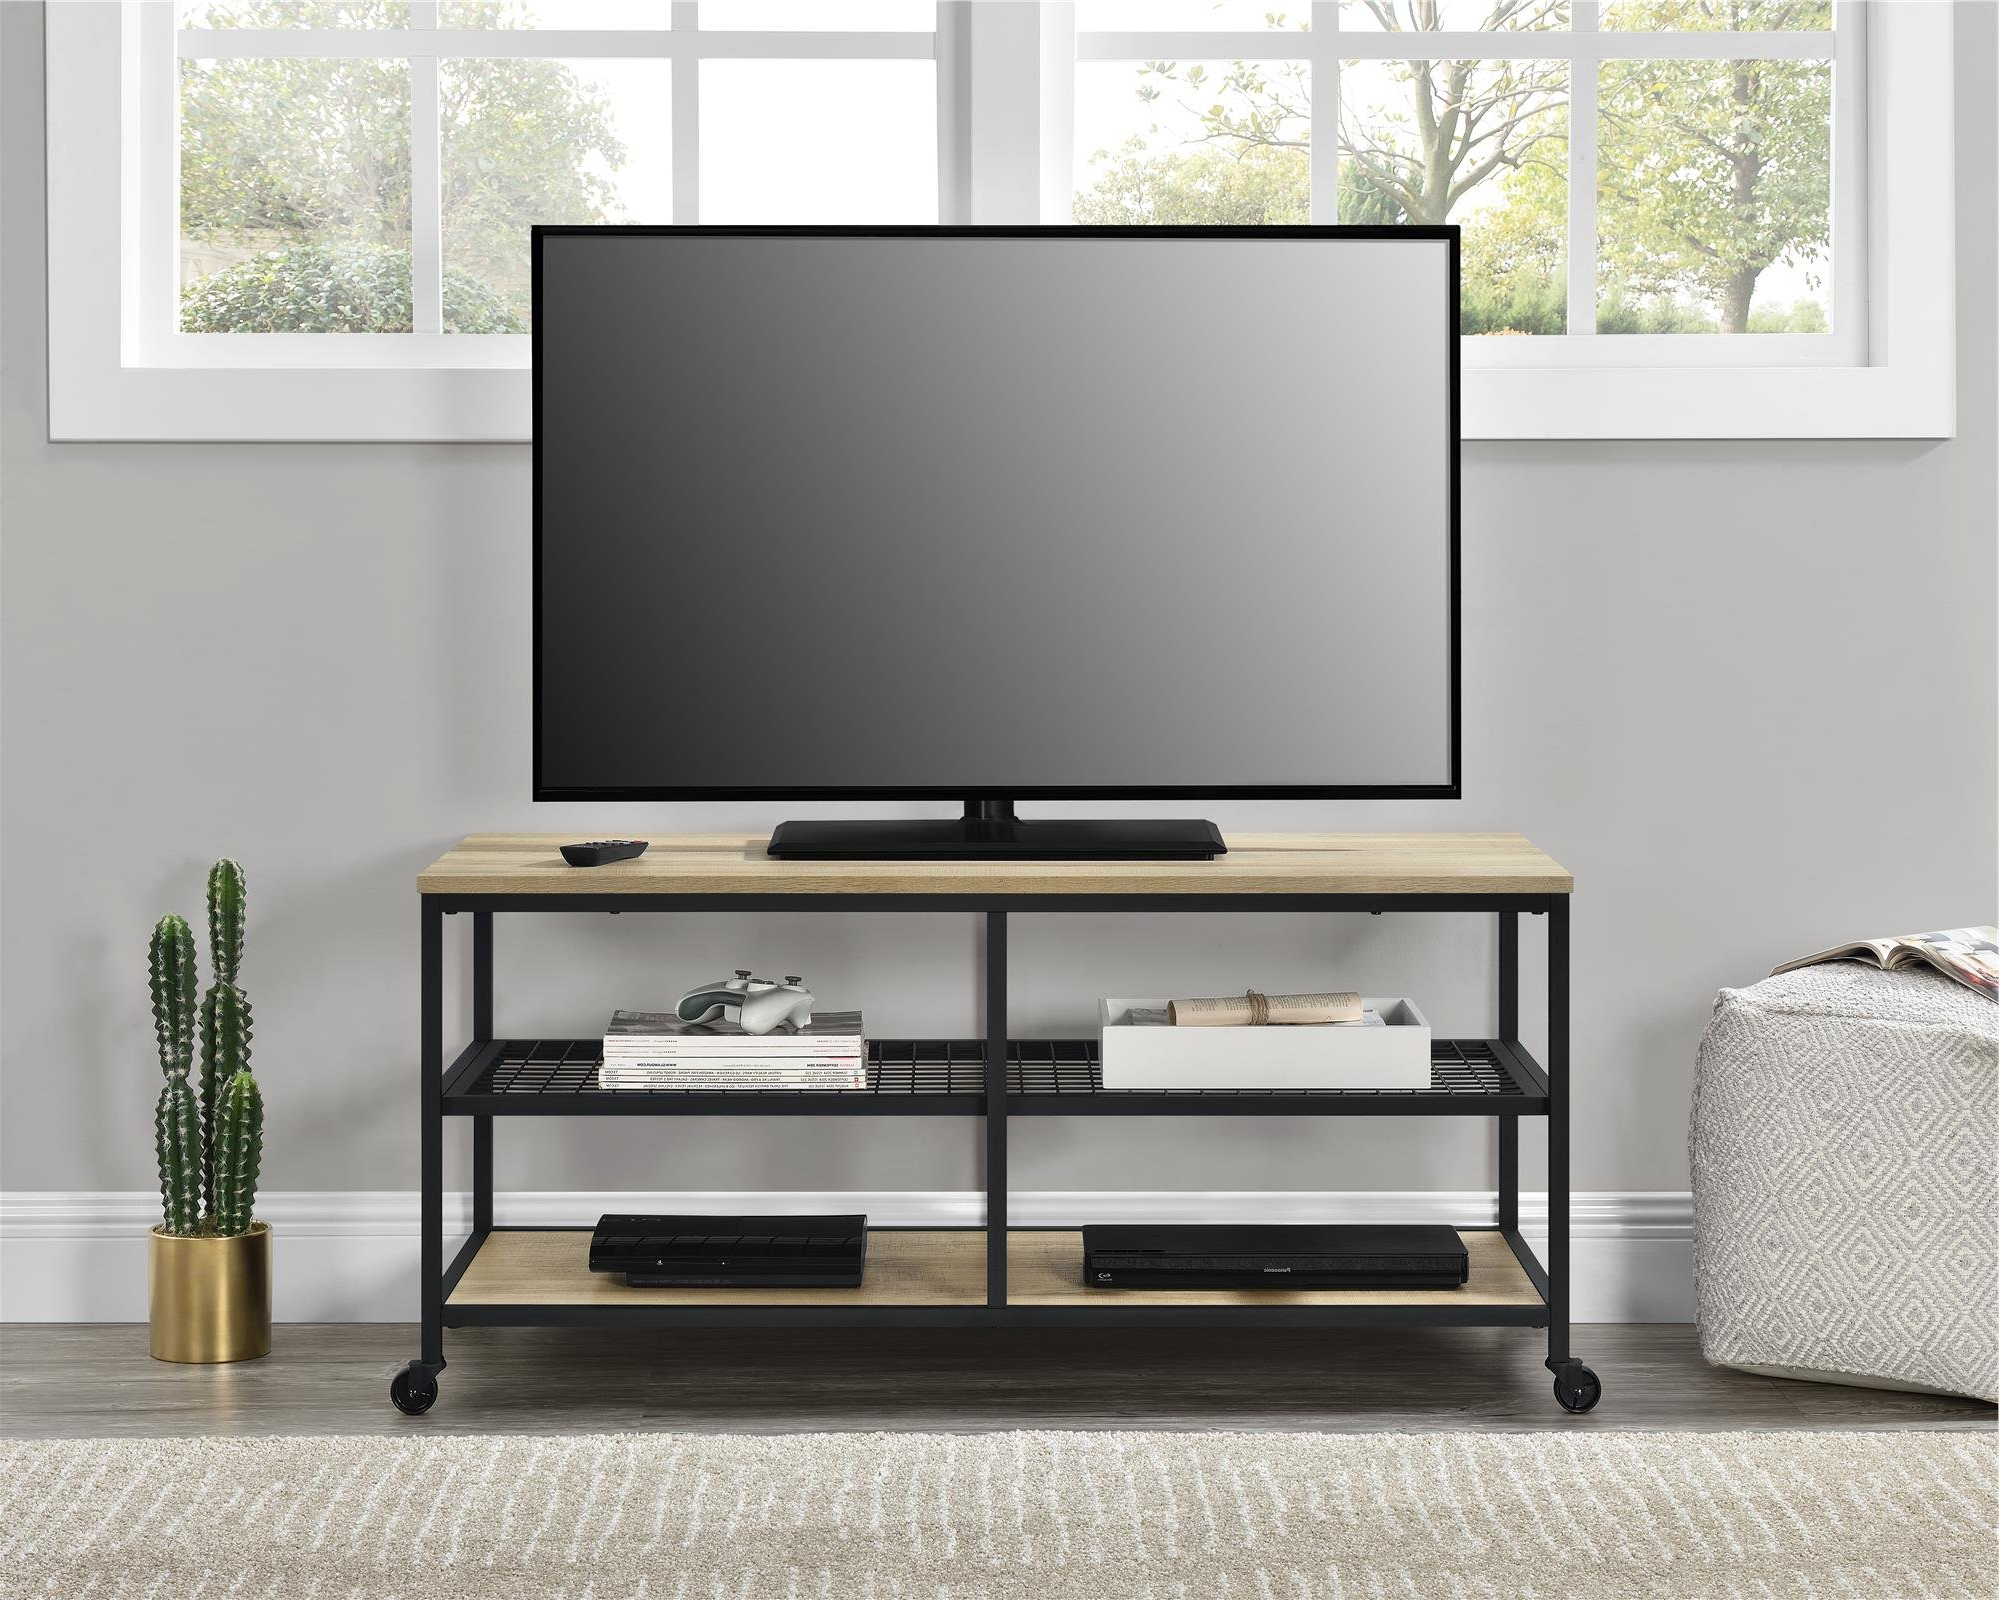 Cast Iron Tv Stands Throughout Best And Newest Industrial Tv Stands You'll Love (View 8 of 20)